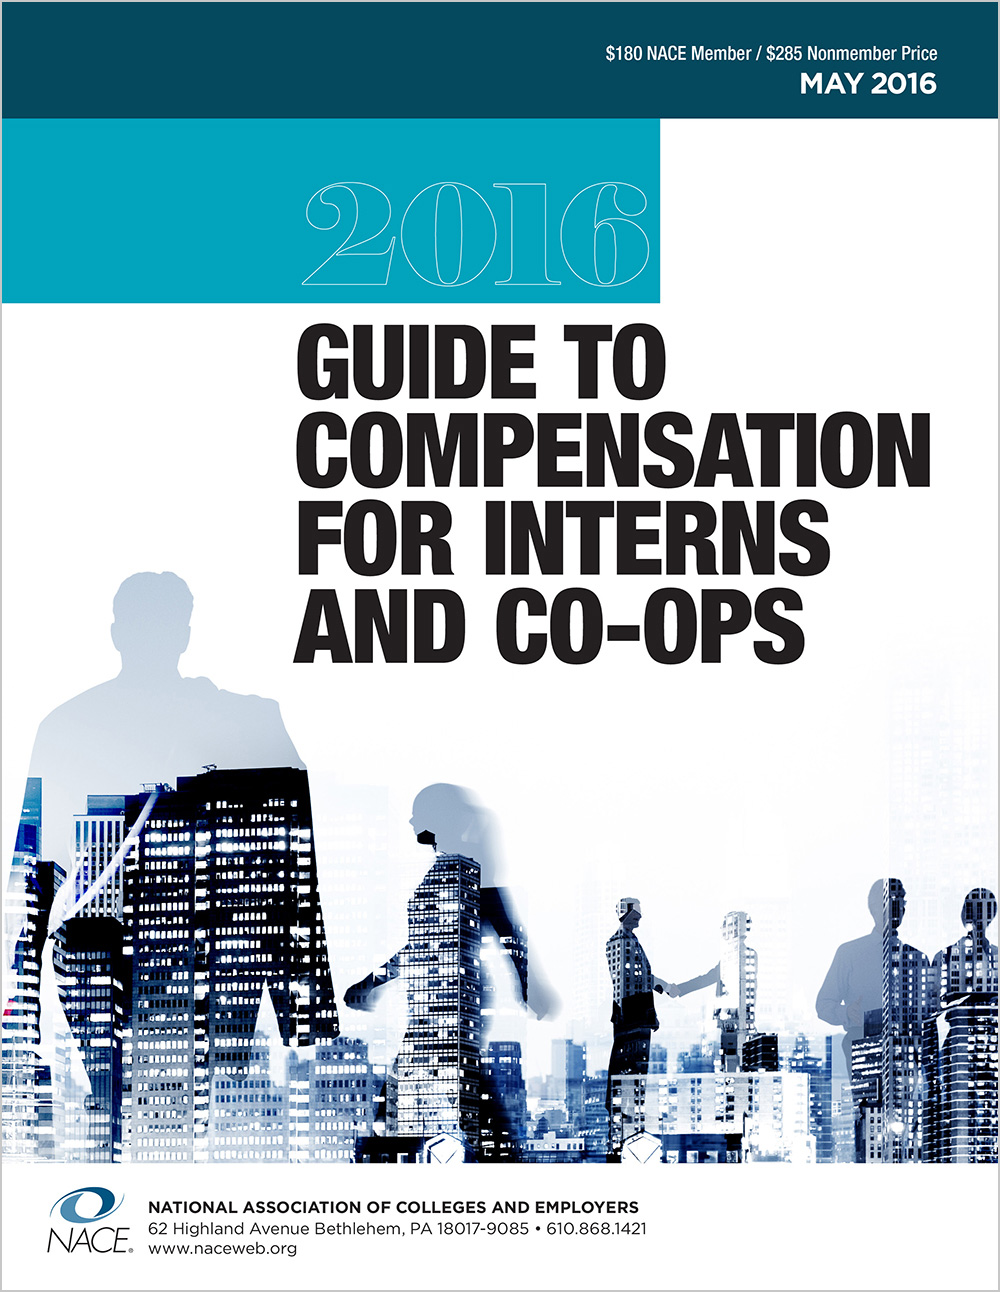 Guide to Compensation for Intern & Co-ops 2016